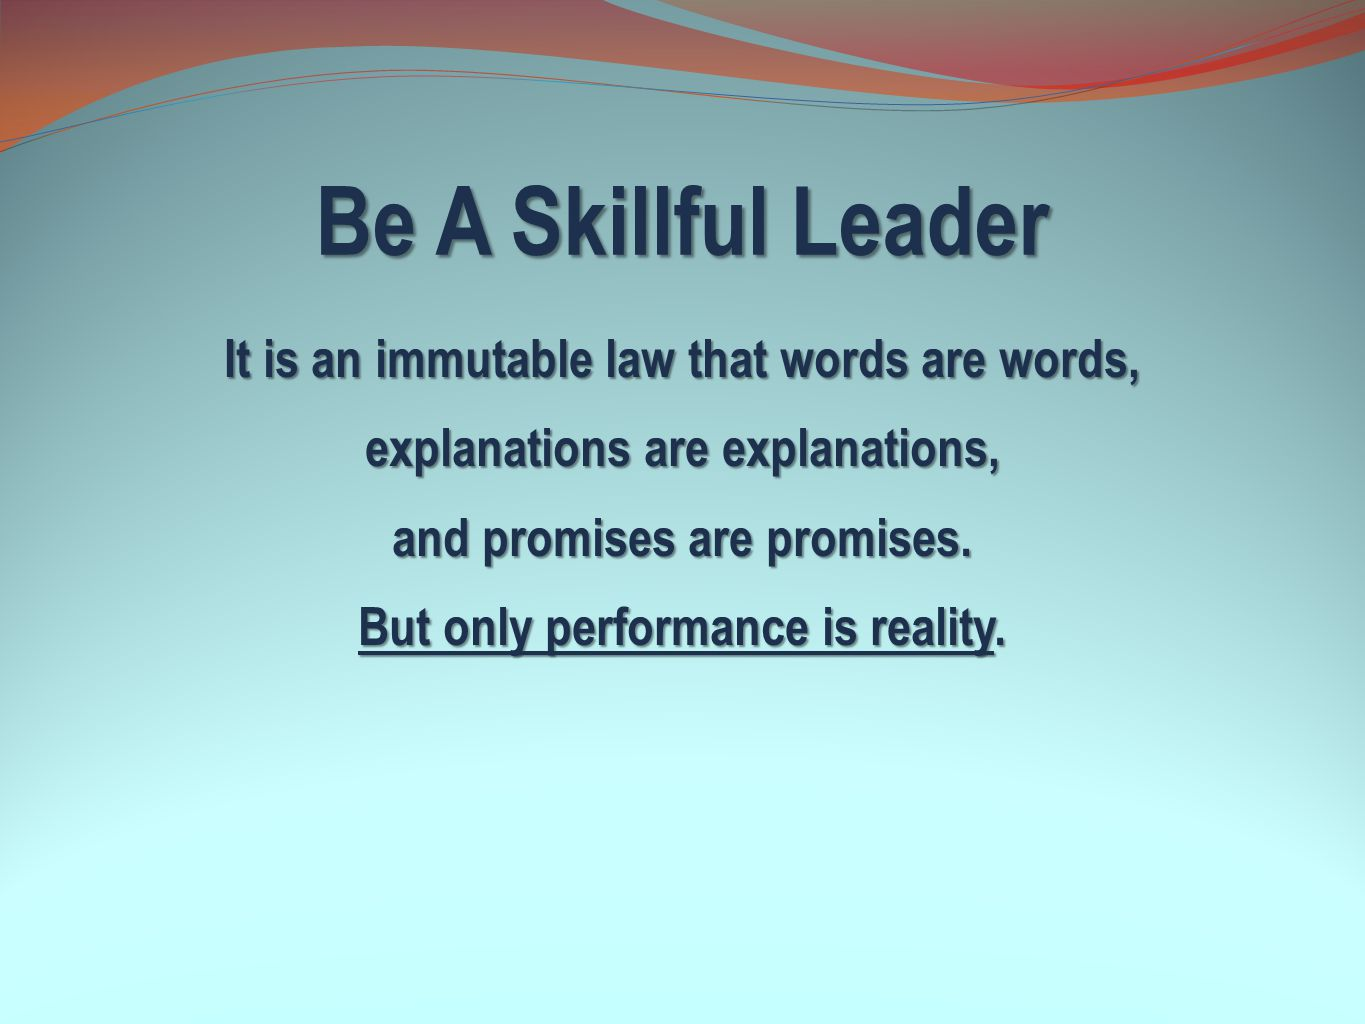 Be A Skillful Leader